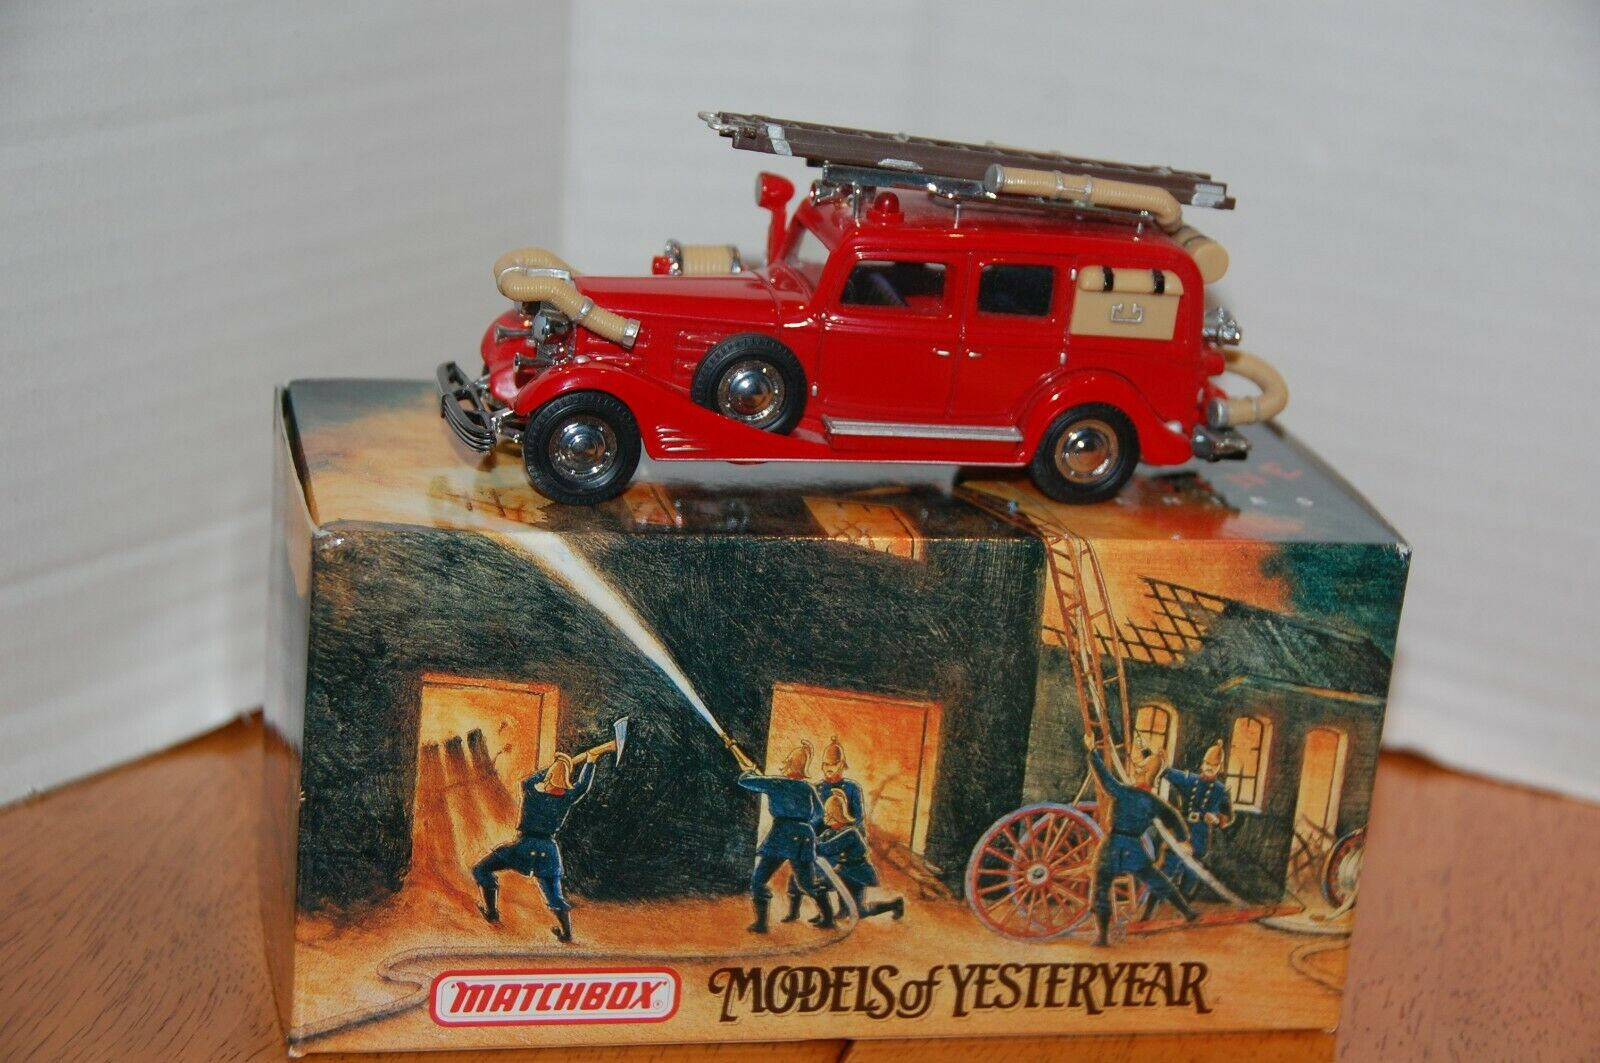 1933 Cadilac Fire Wagon, Fire Engine Series Matchlåda modelllllerler of Yesteryear YFE03